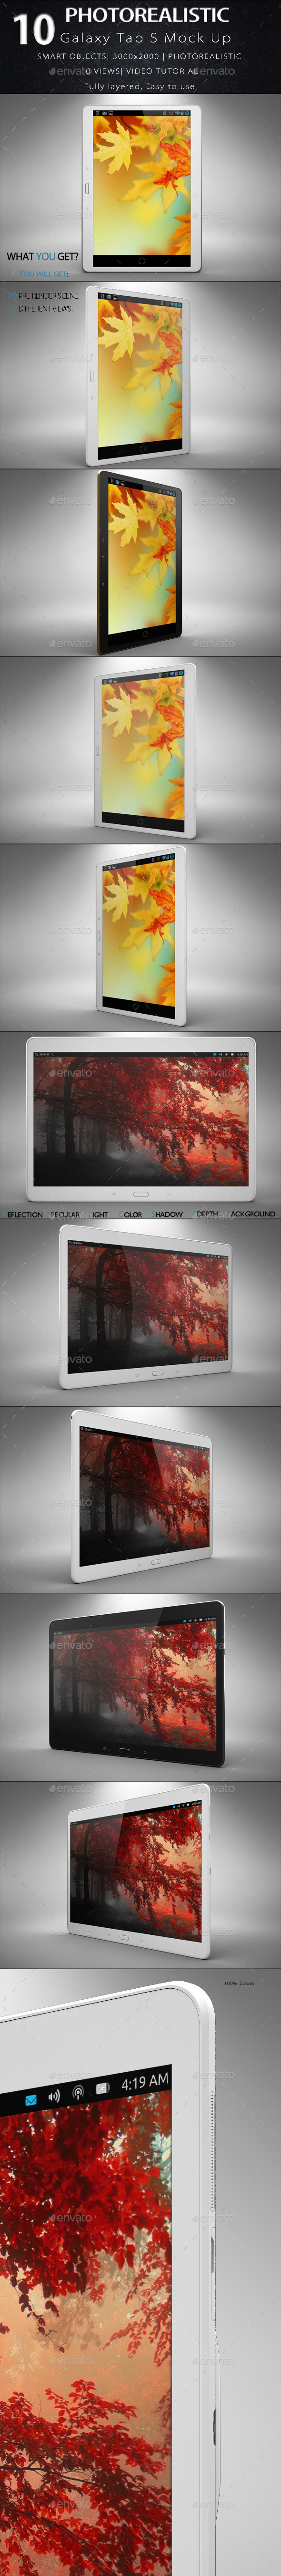 Galaxy S Tab Mock Up